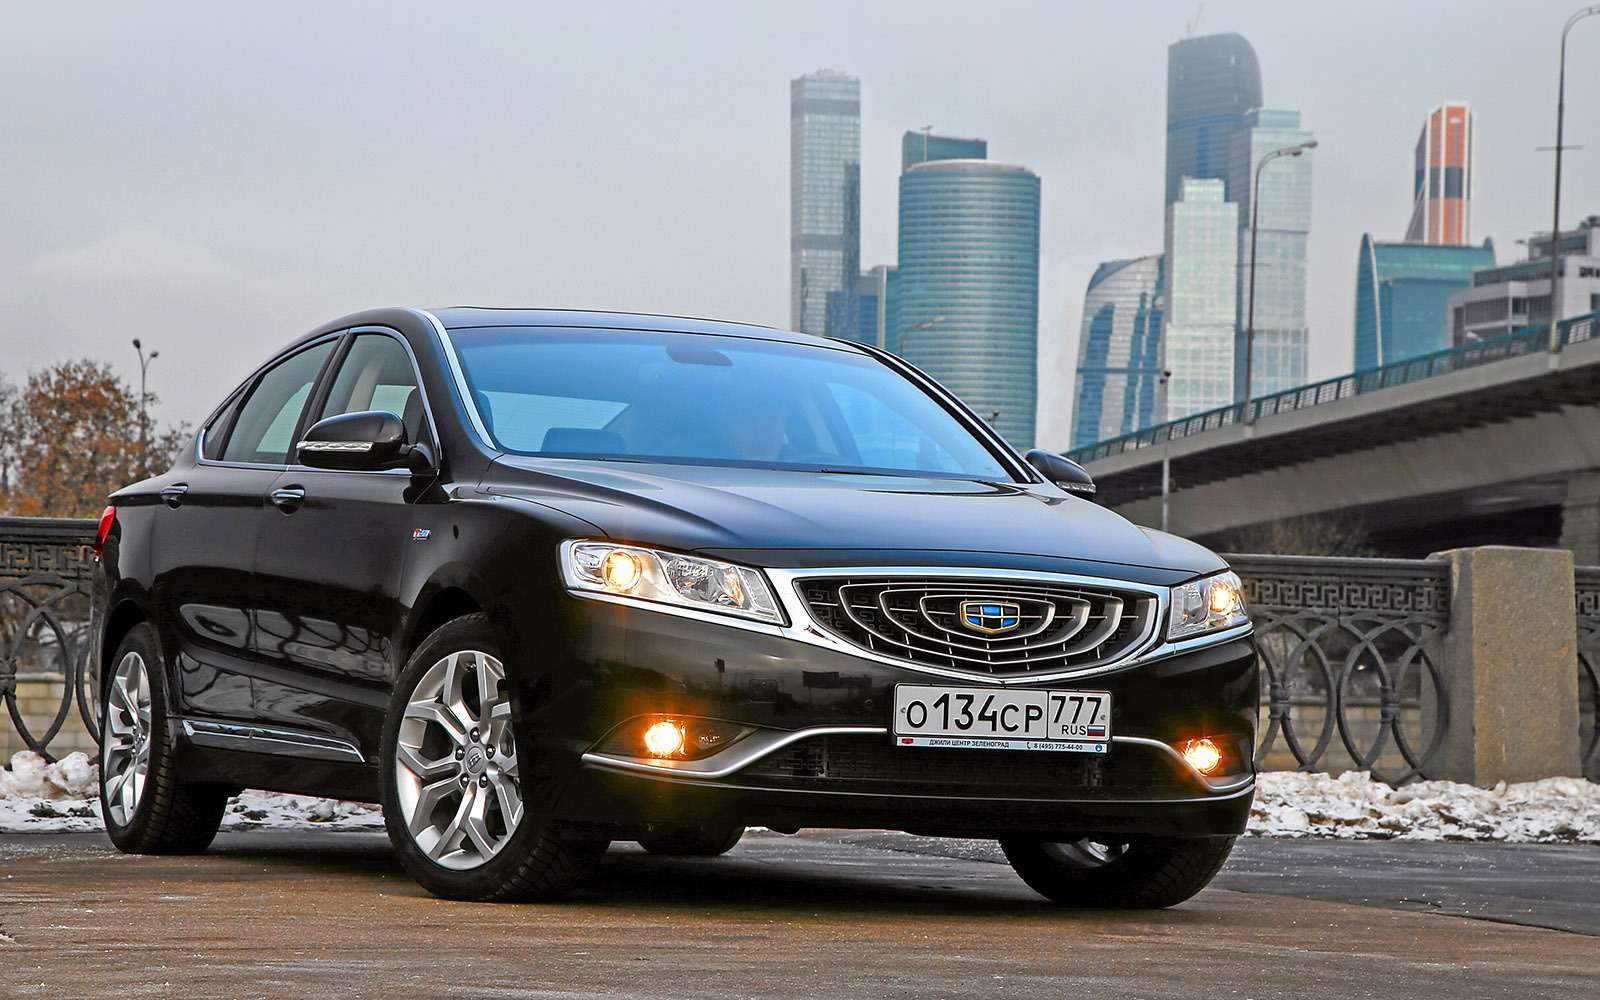 Geely Emgrand GT